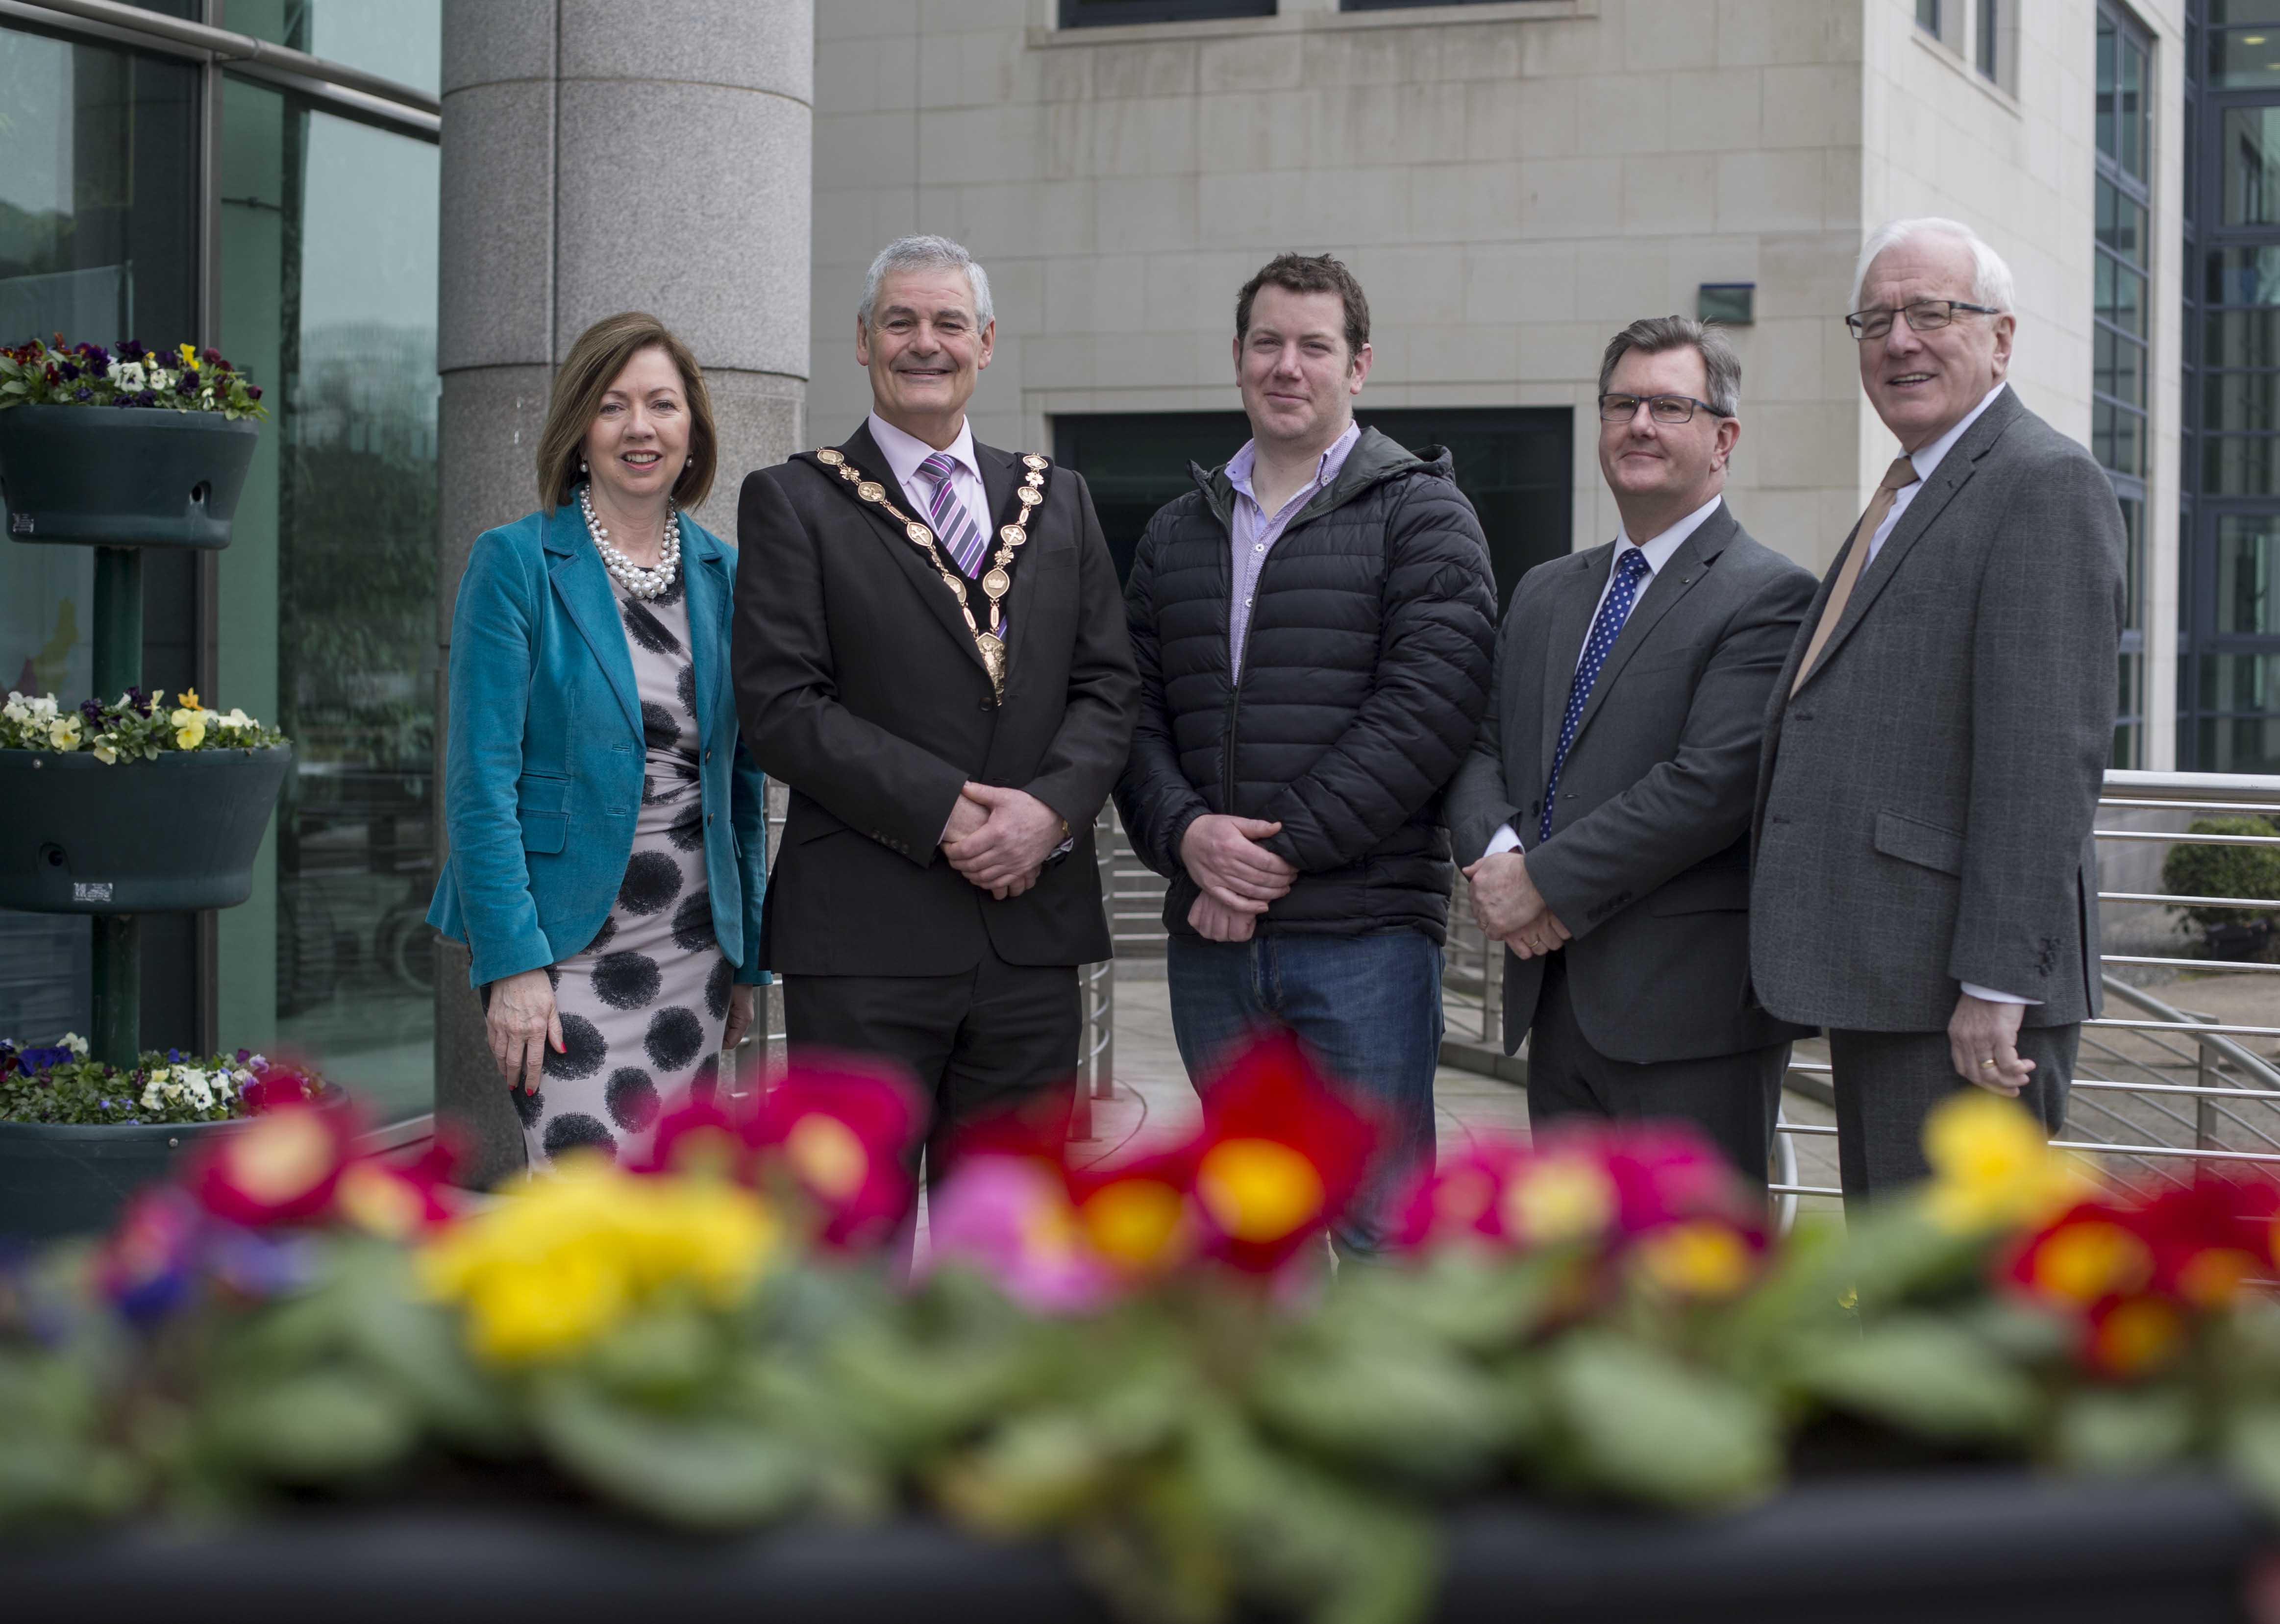 Council embarks on its most ambitious programme of investment activity to date